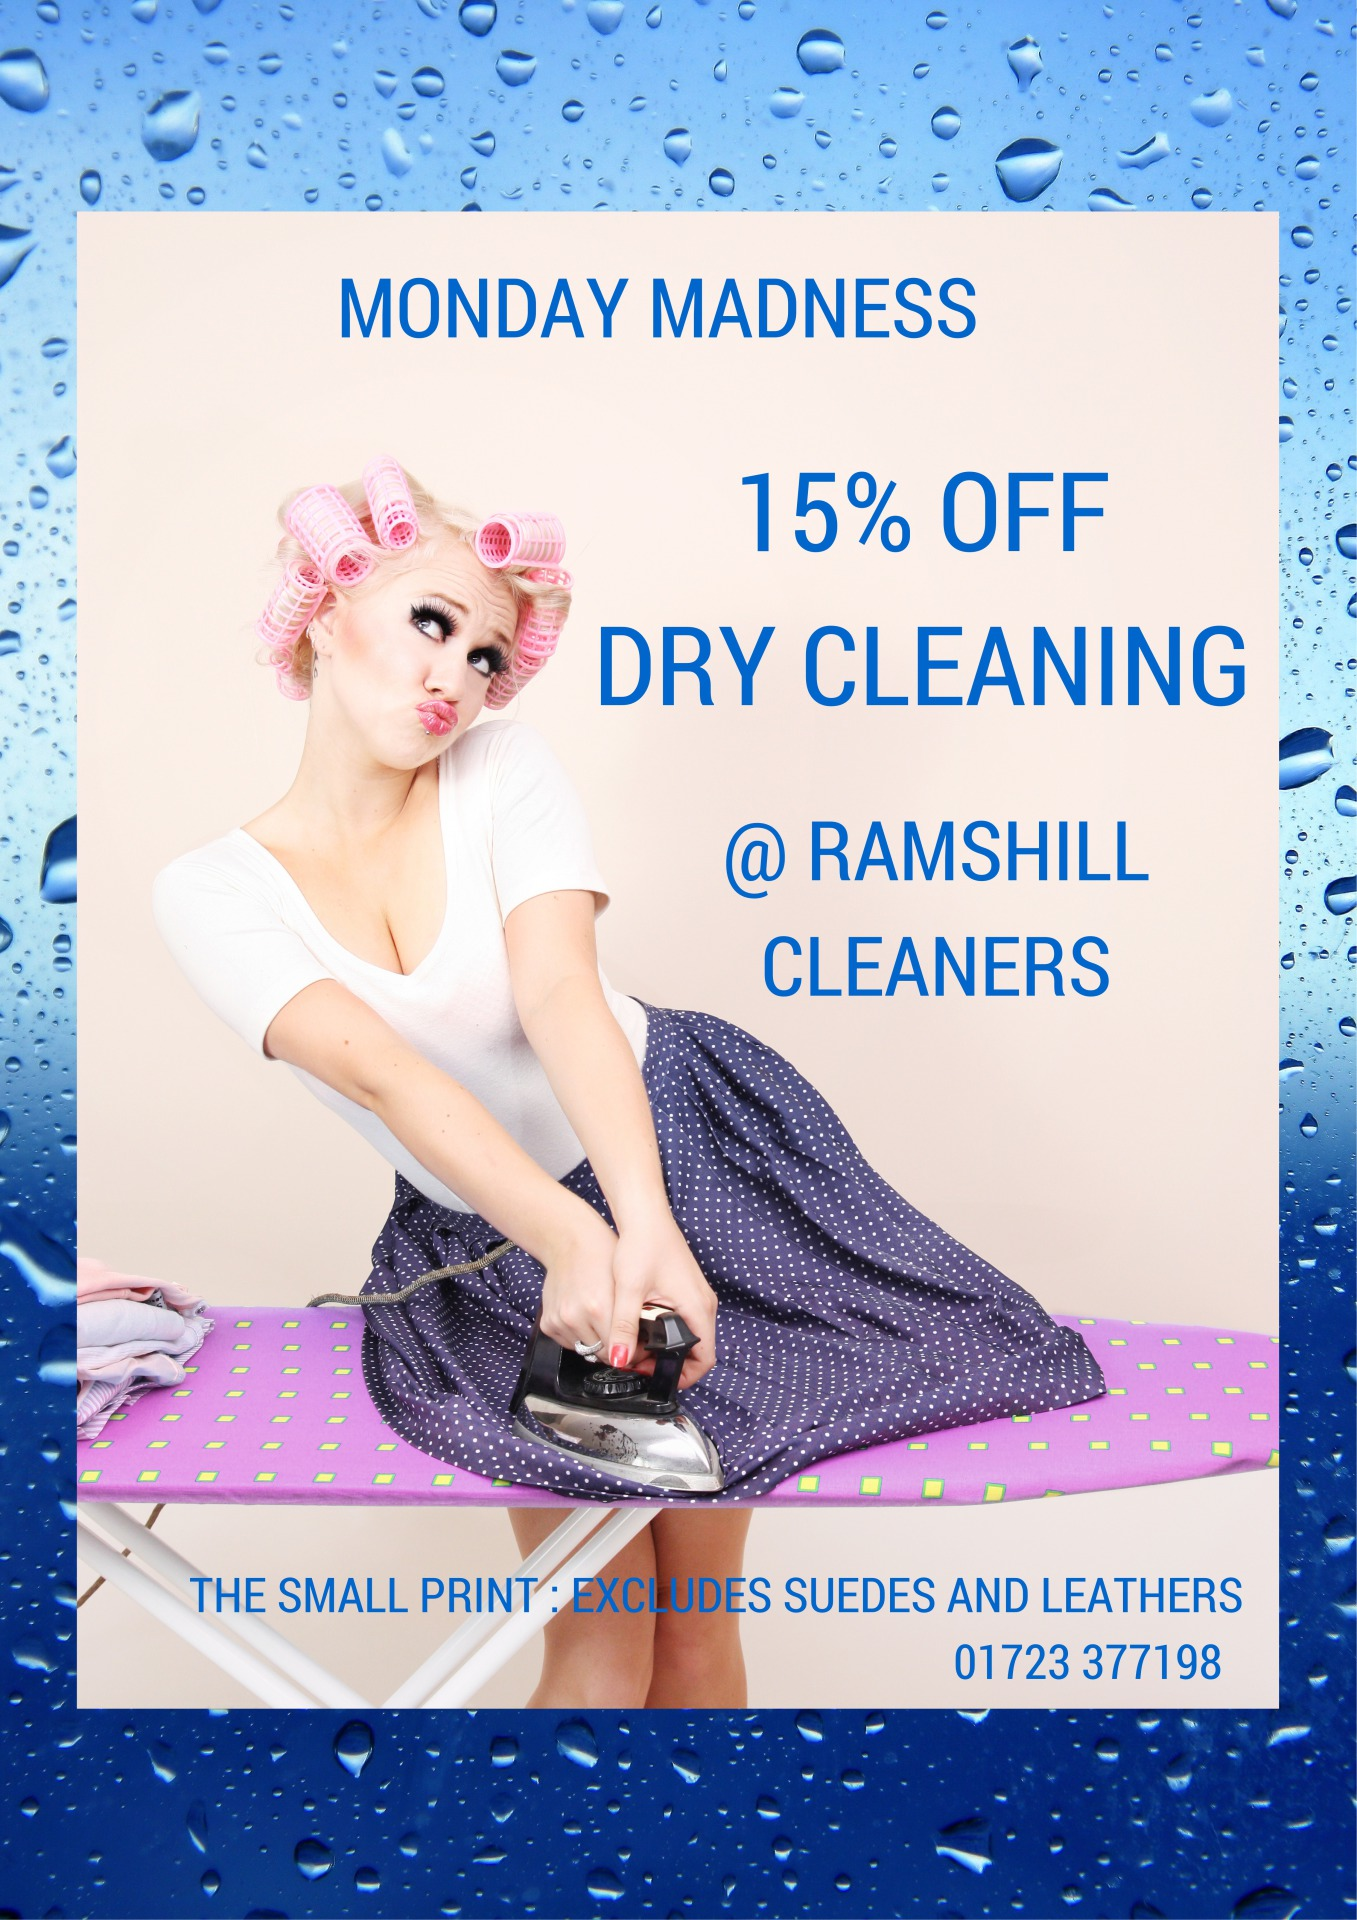 15% Off Dry Cleaning @ Ramshill Cleaners